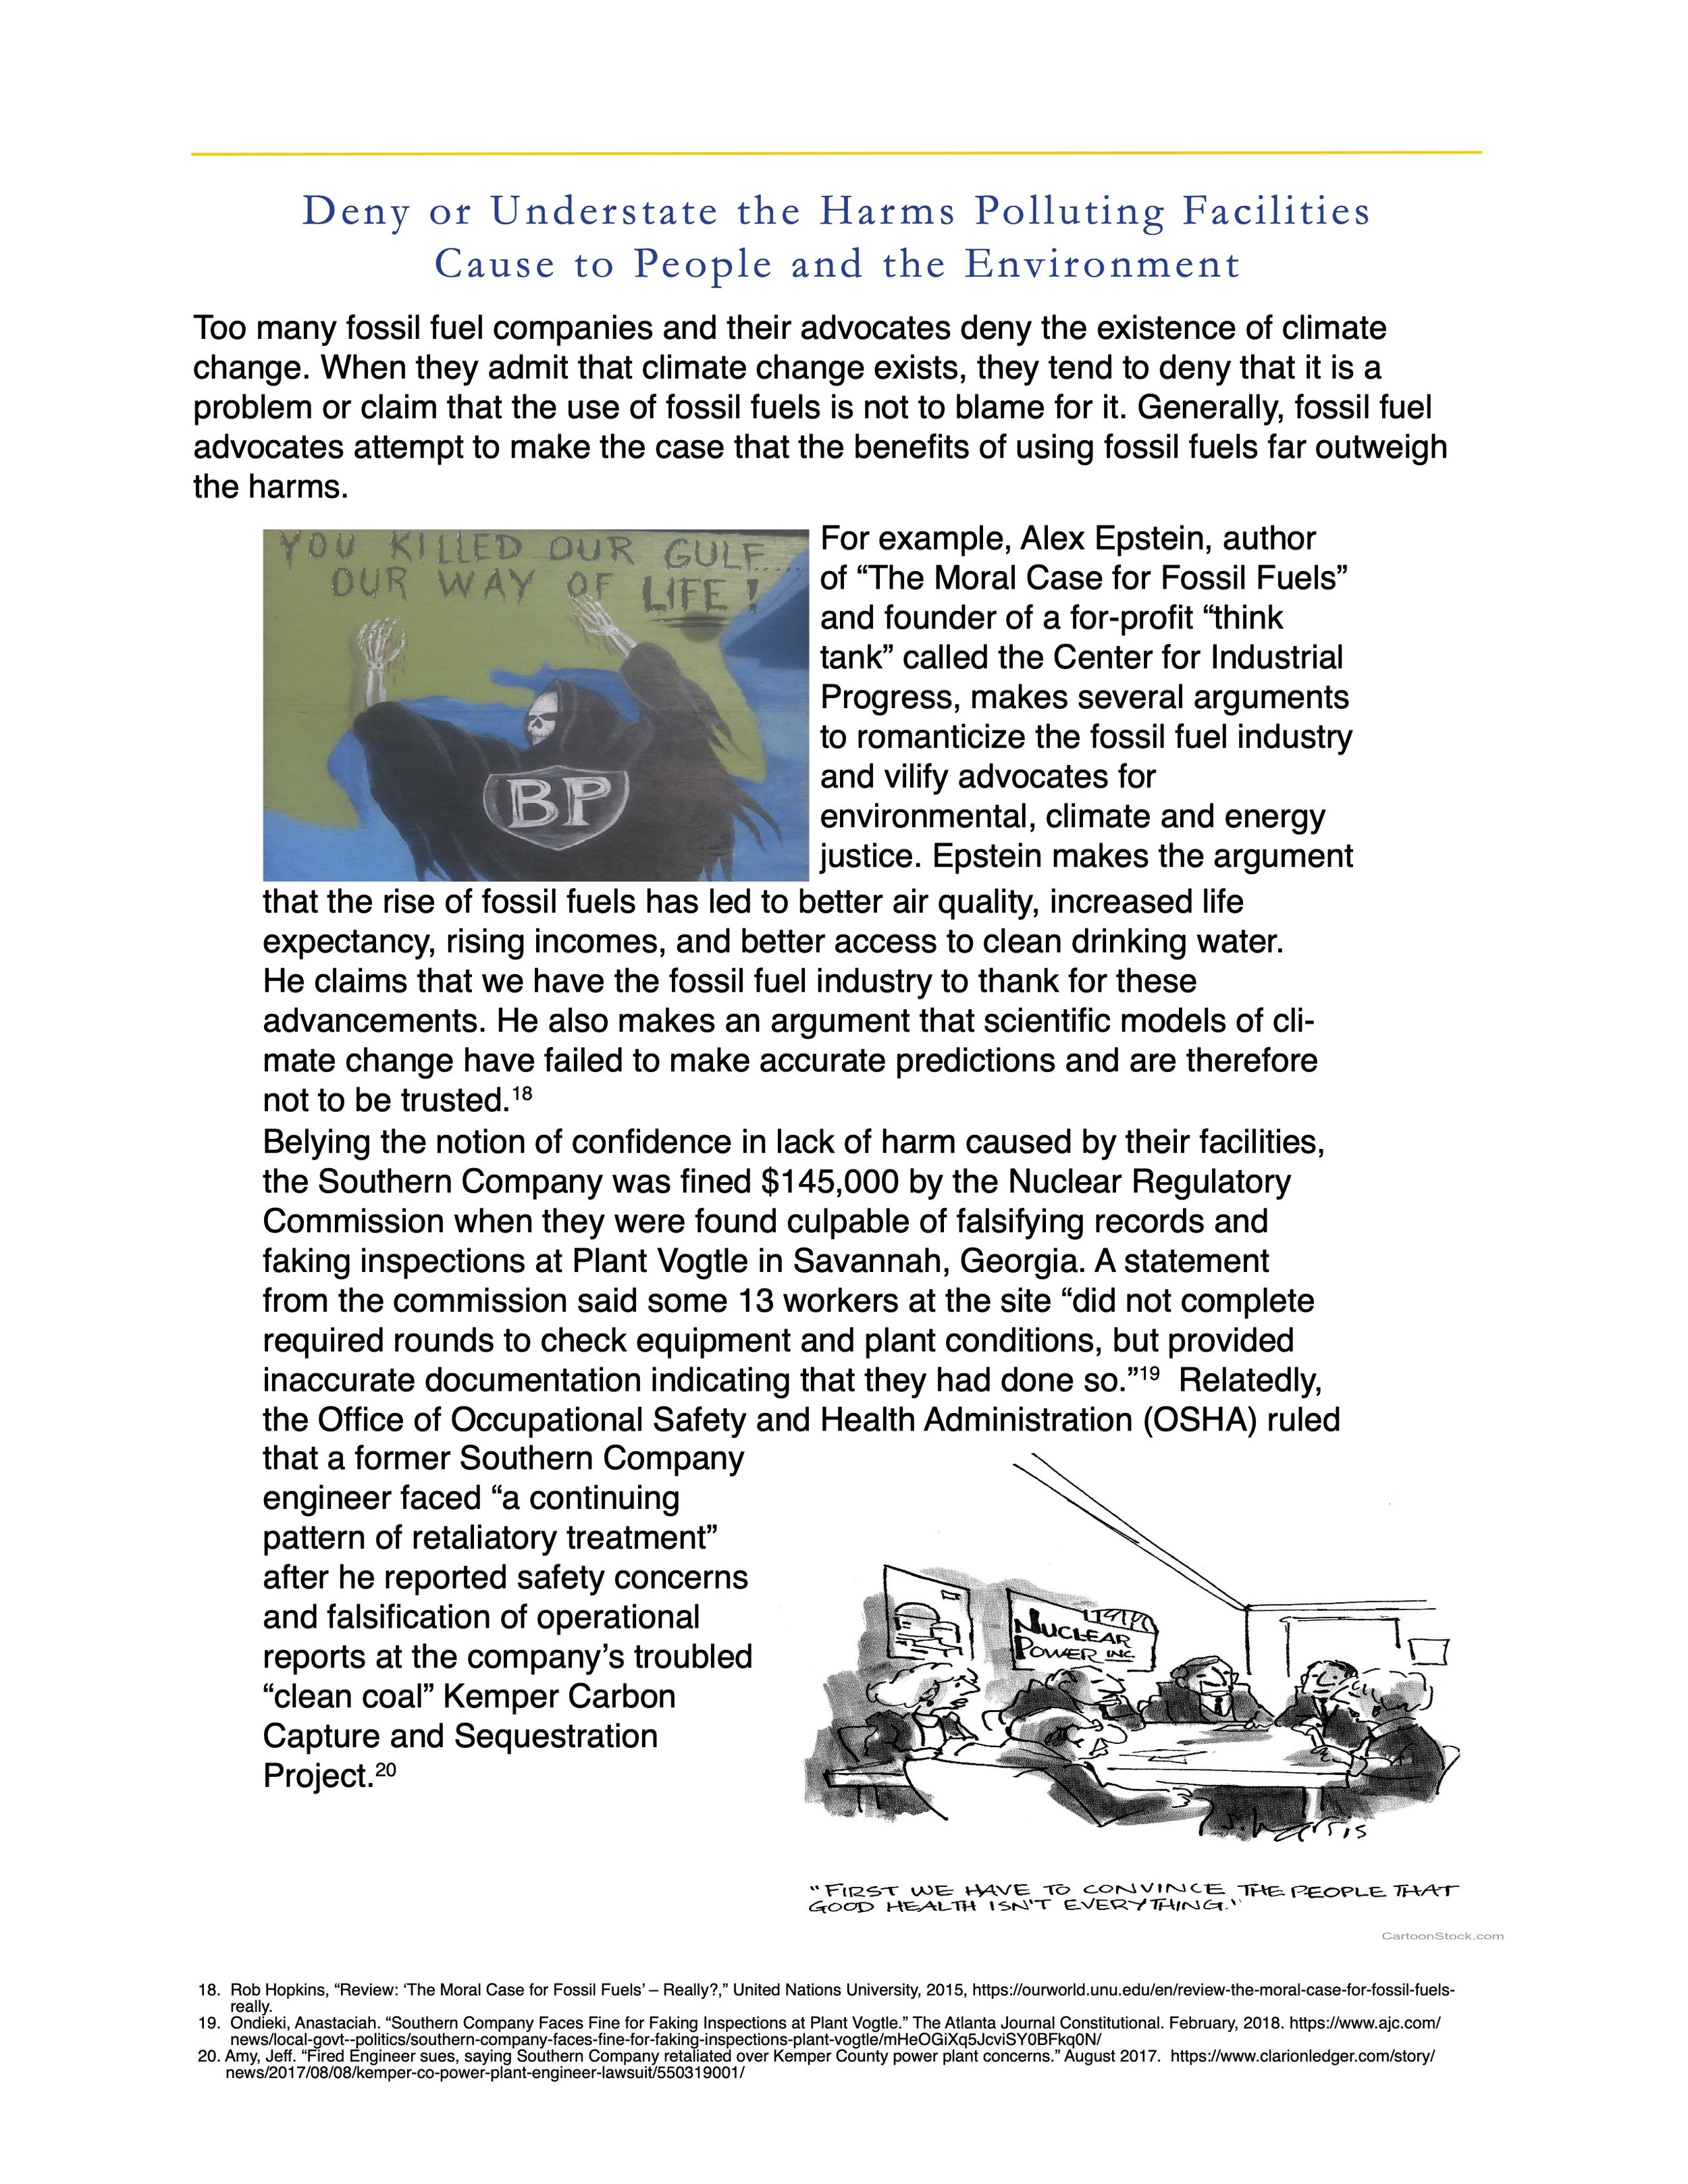 Fossil-Fueled-Foolery-An-Illustrated-Primer-on-the-Top-10-Manipulation-Tactics-of-the-Fossil-Fuel-Industry 9.jpeg